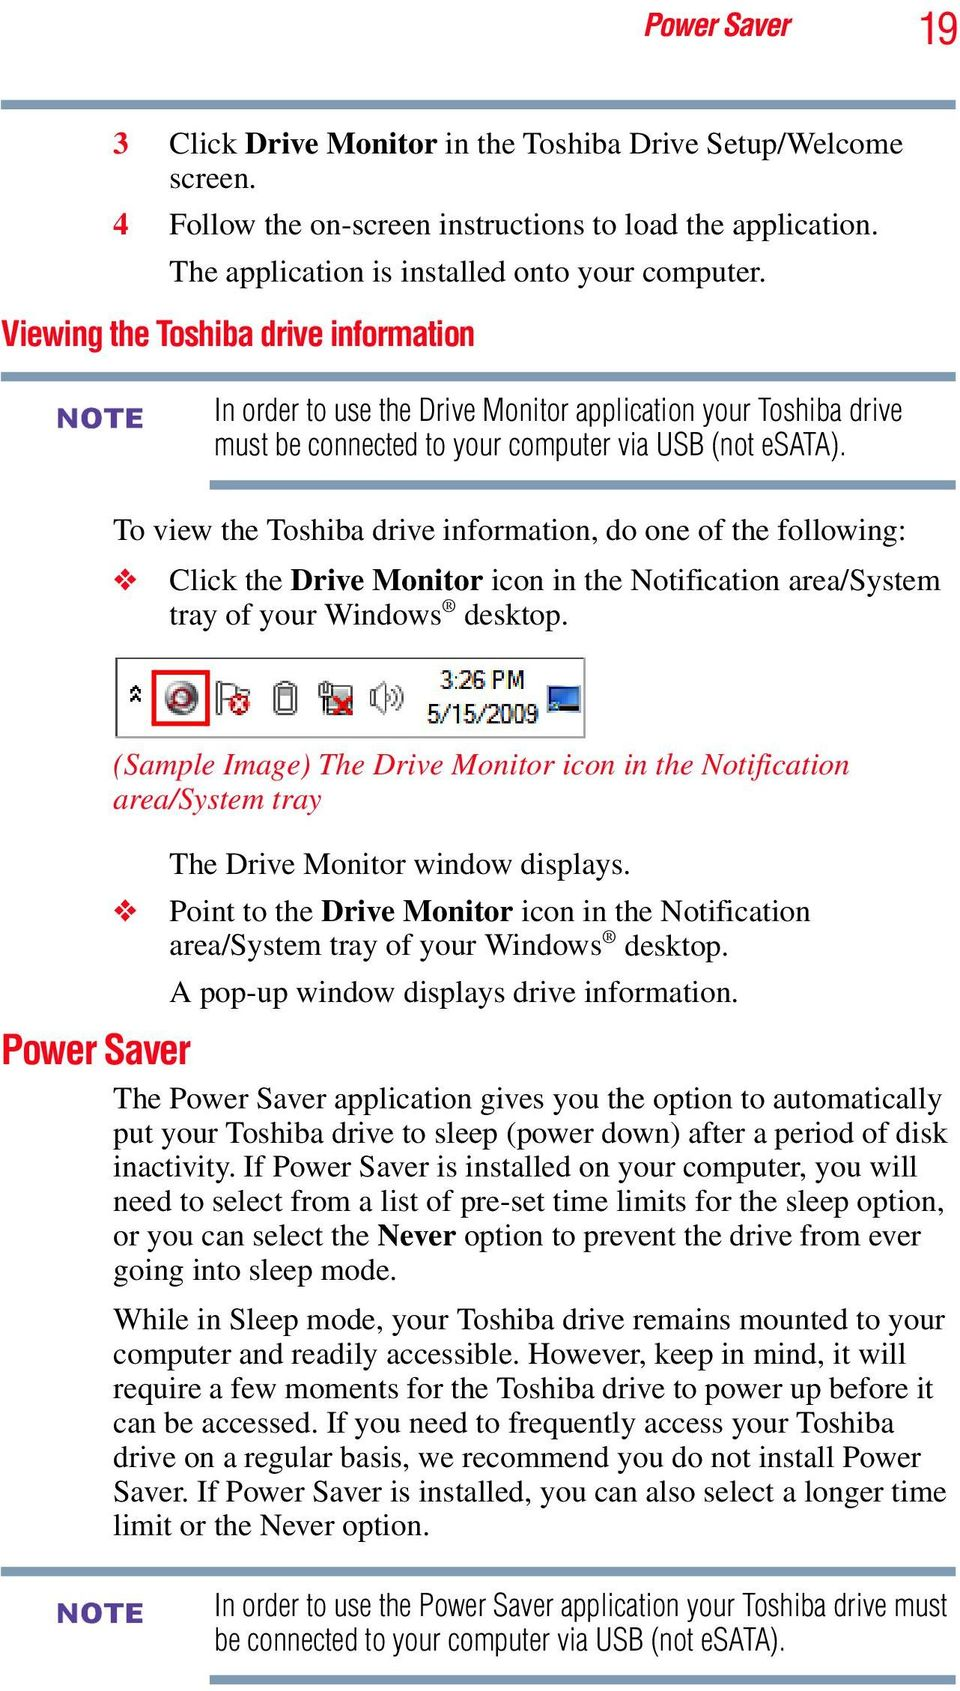 To view the Toshiba drive information, do one of the following: Click the Drive Monitor icon in the Notification area/system tray of your Windows desktop.